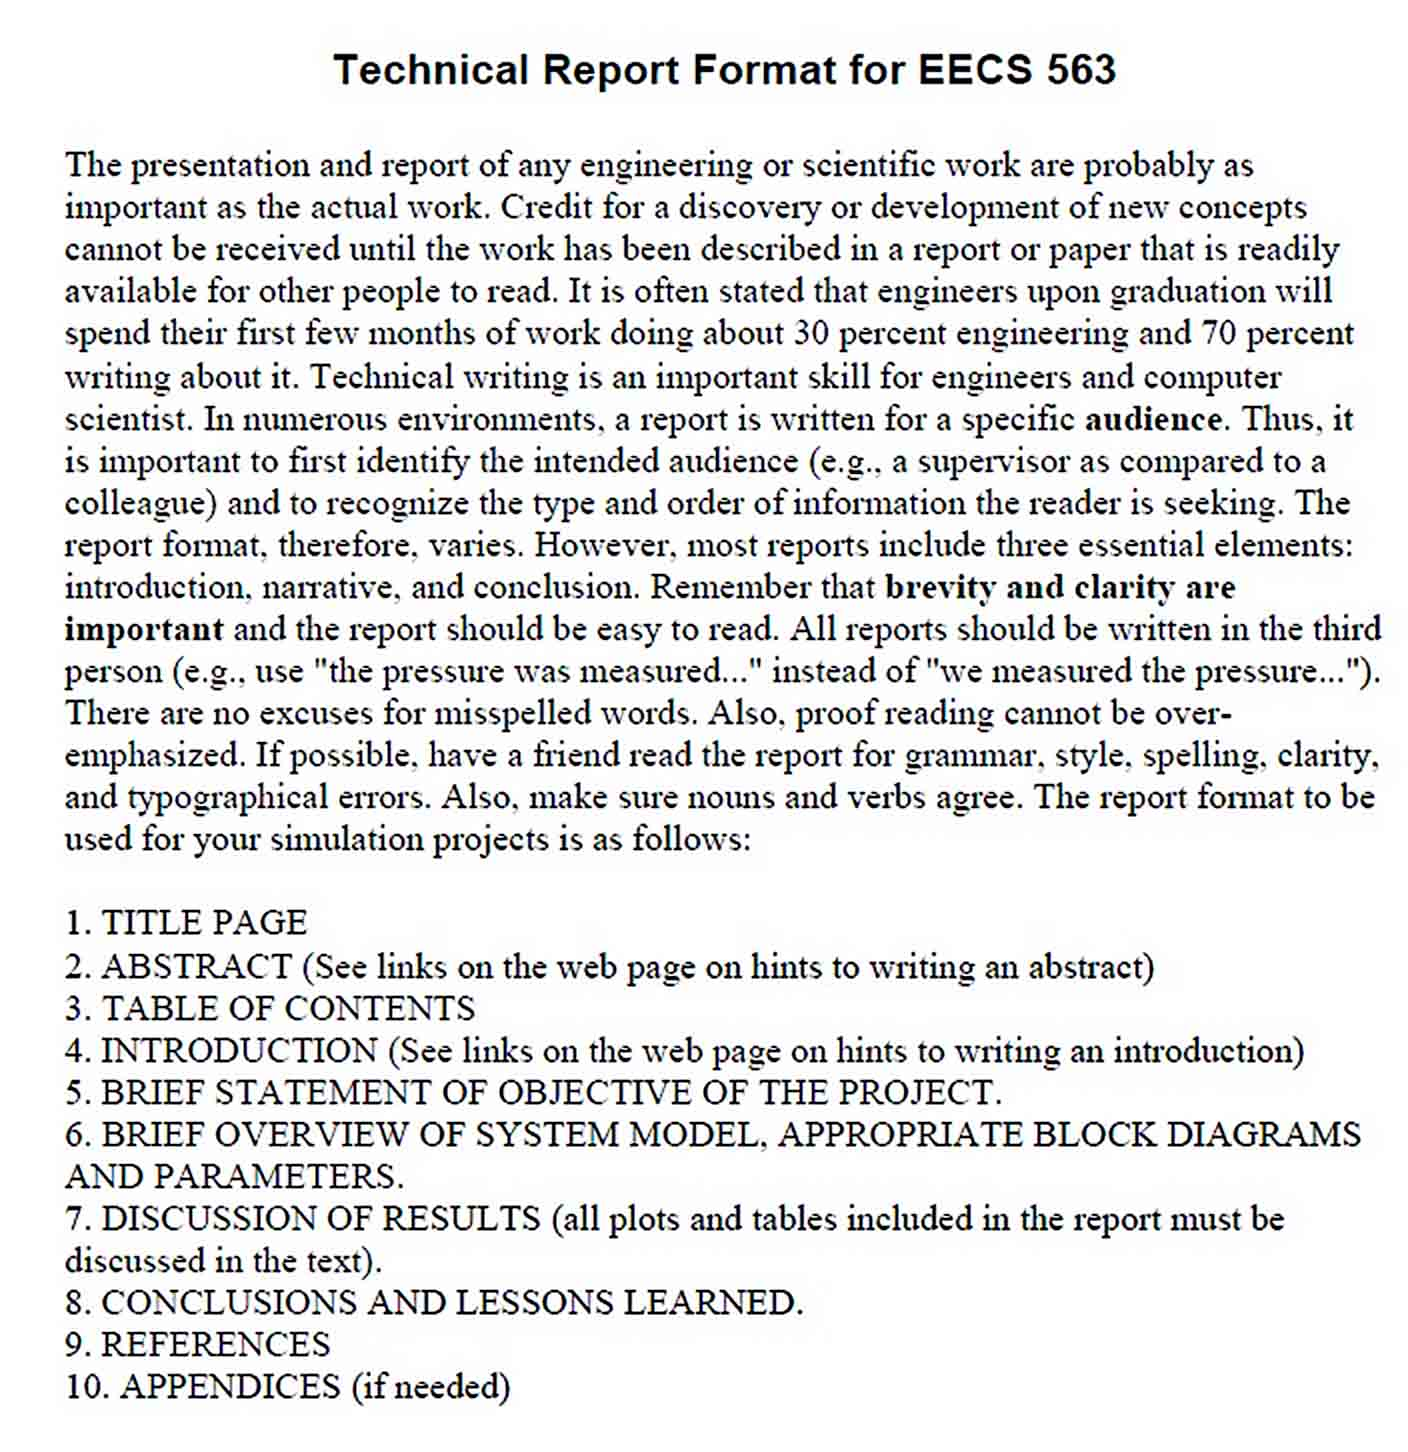 Templates Technical Report Format